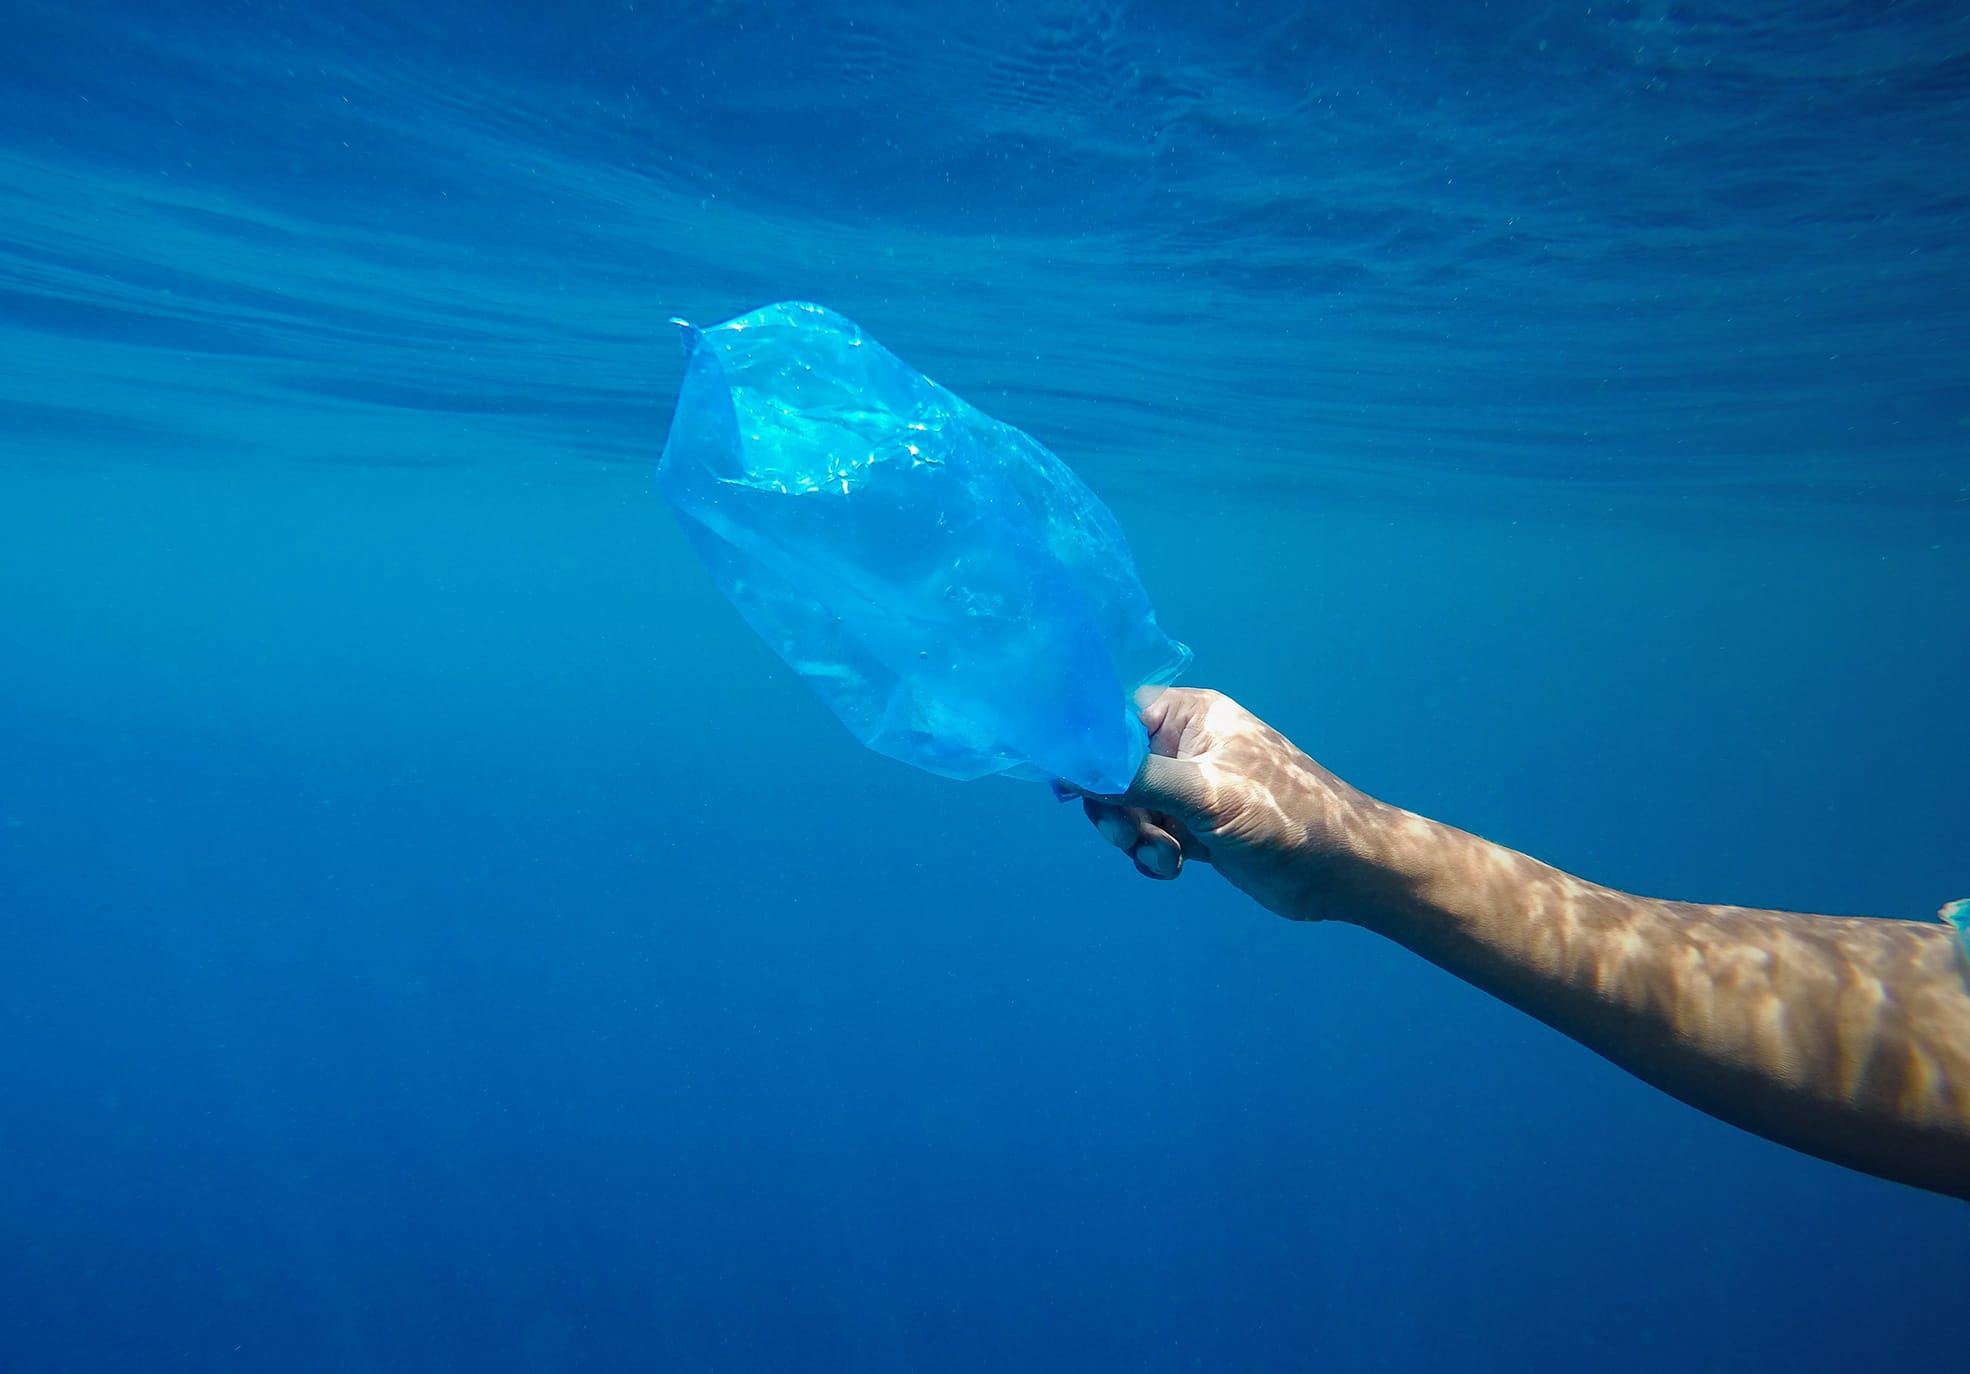 Man underwater grabbing a plastic bag cleaning the ocean of plastic pollution stock photograph by Ahmed Areef EyeEm